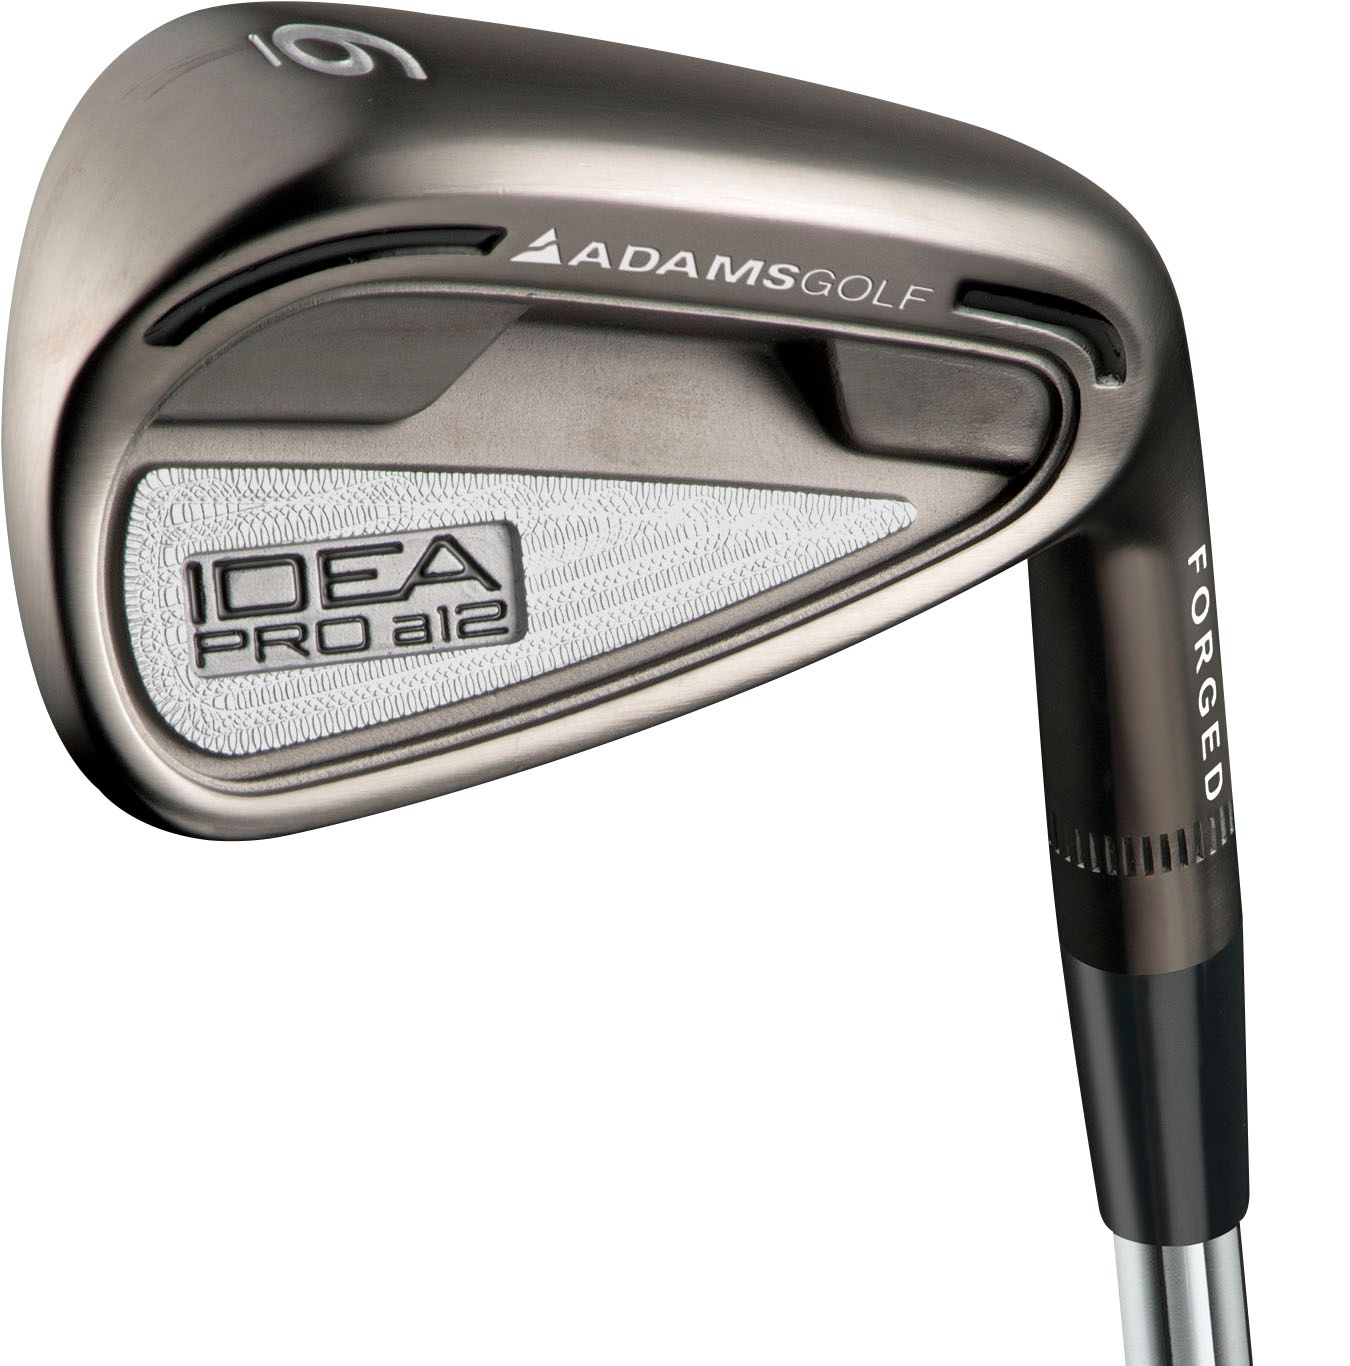 Adams Men's IDEA Pro a12 Irons   4 AW (Graphite)